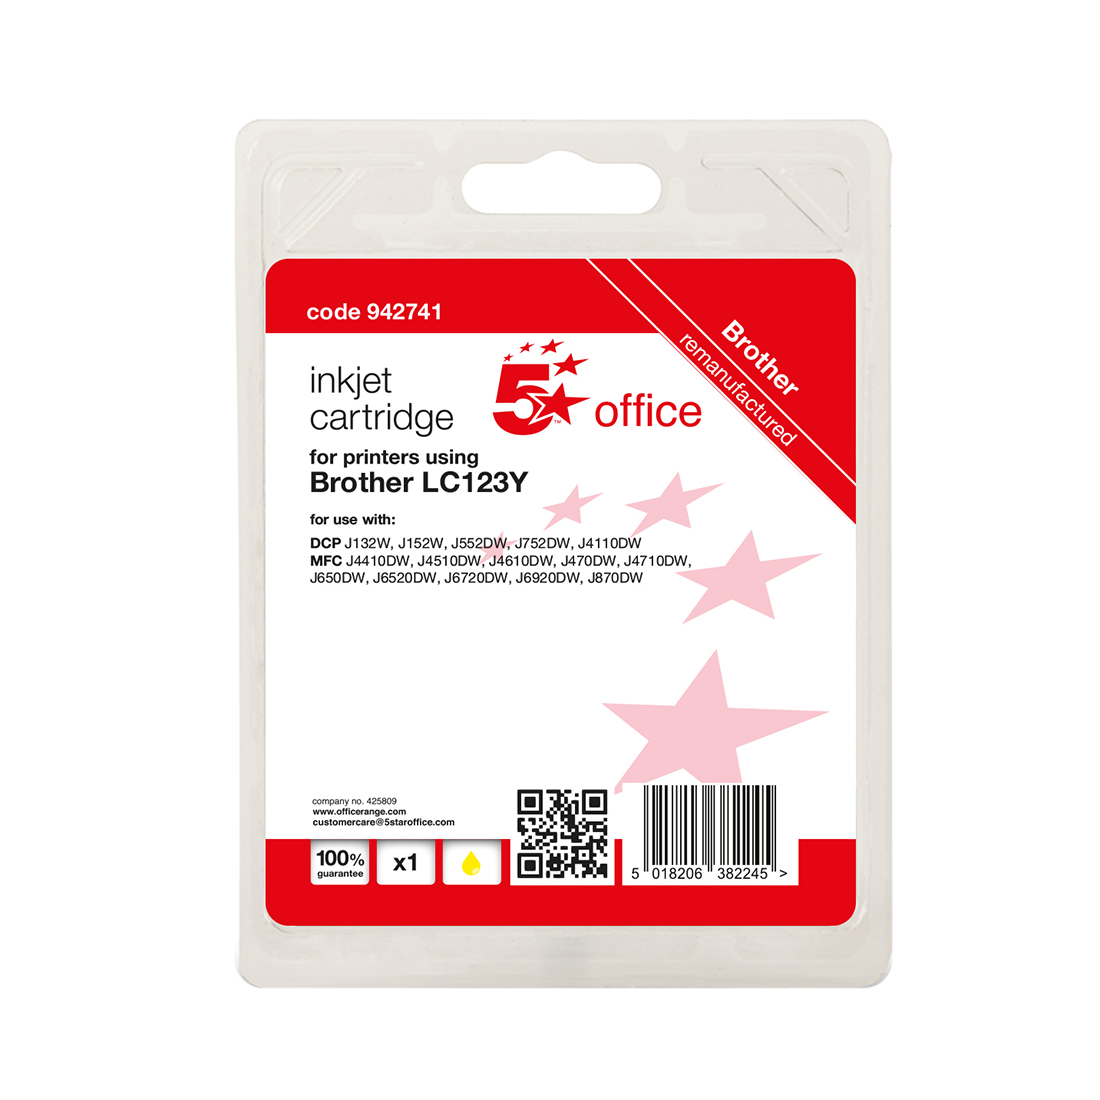 5 Star Office Remanufactured Inkjet Cartridge Page Life Yellow 600pp Brother LC123Y Alternative